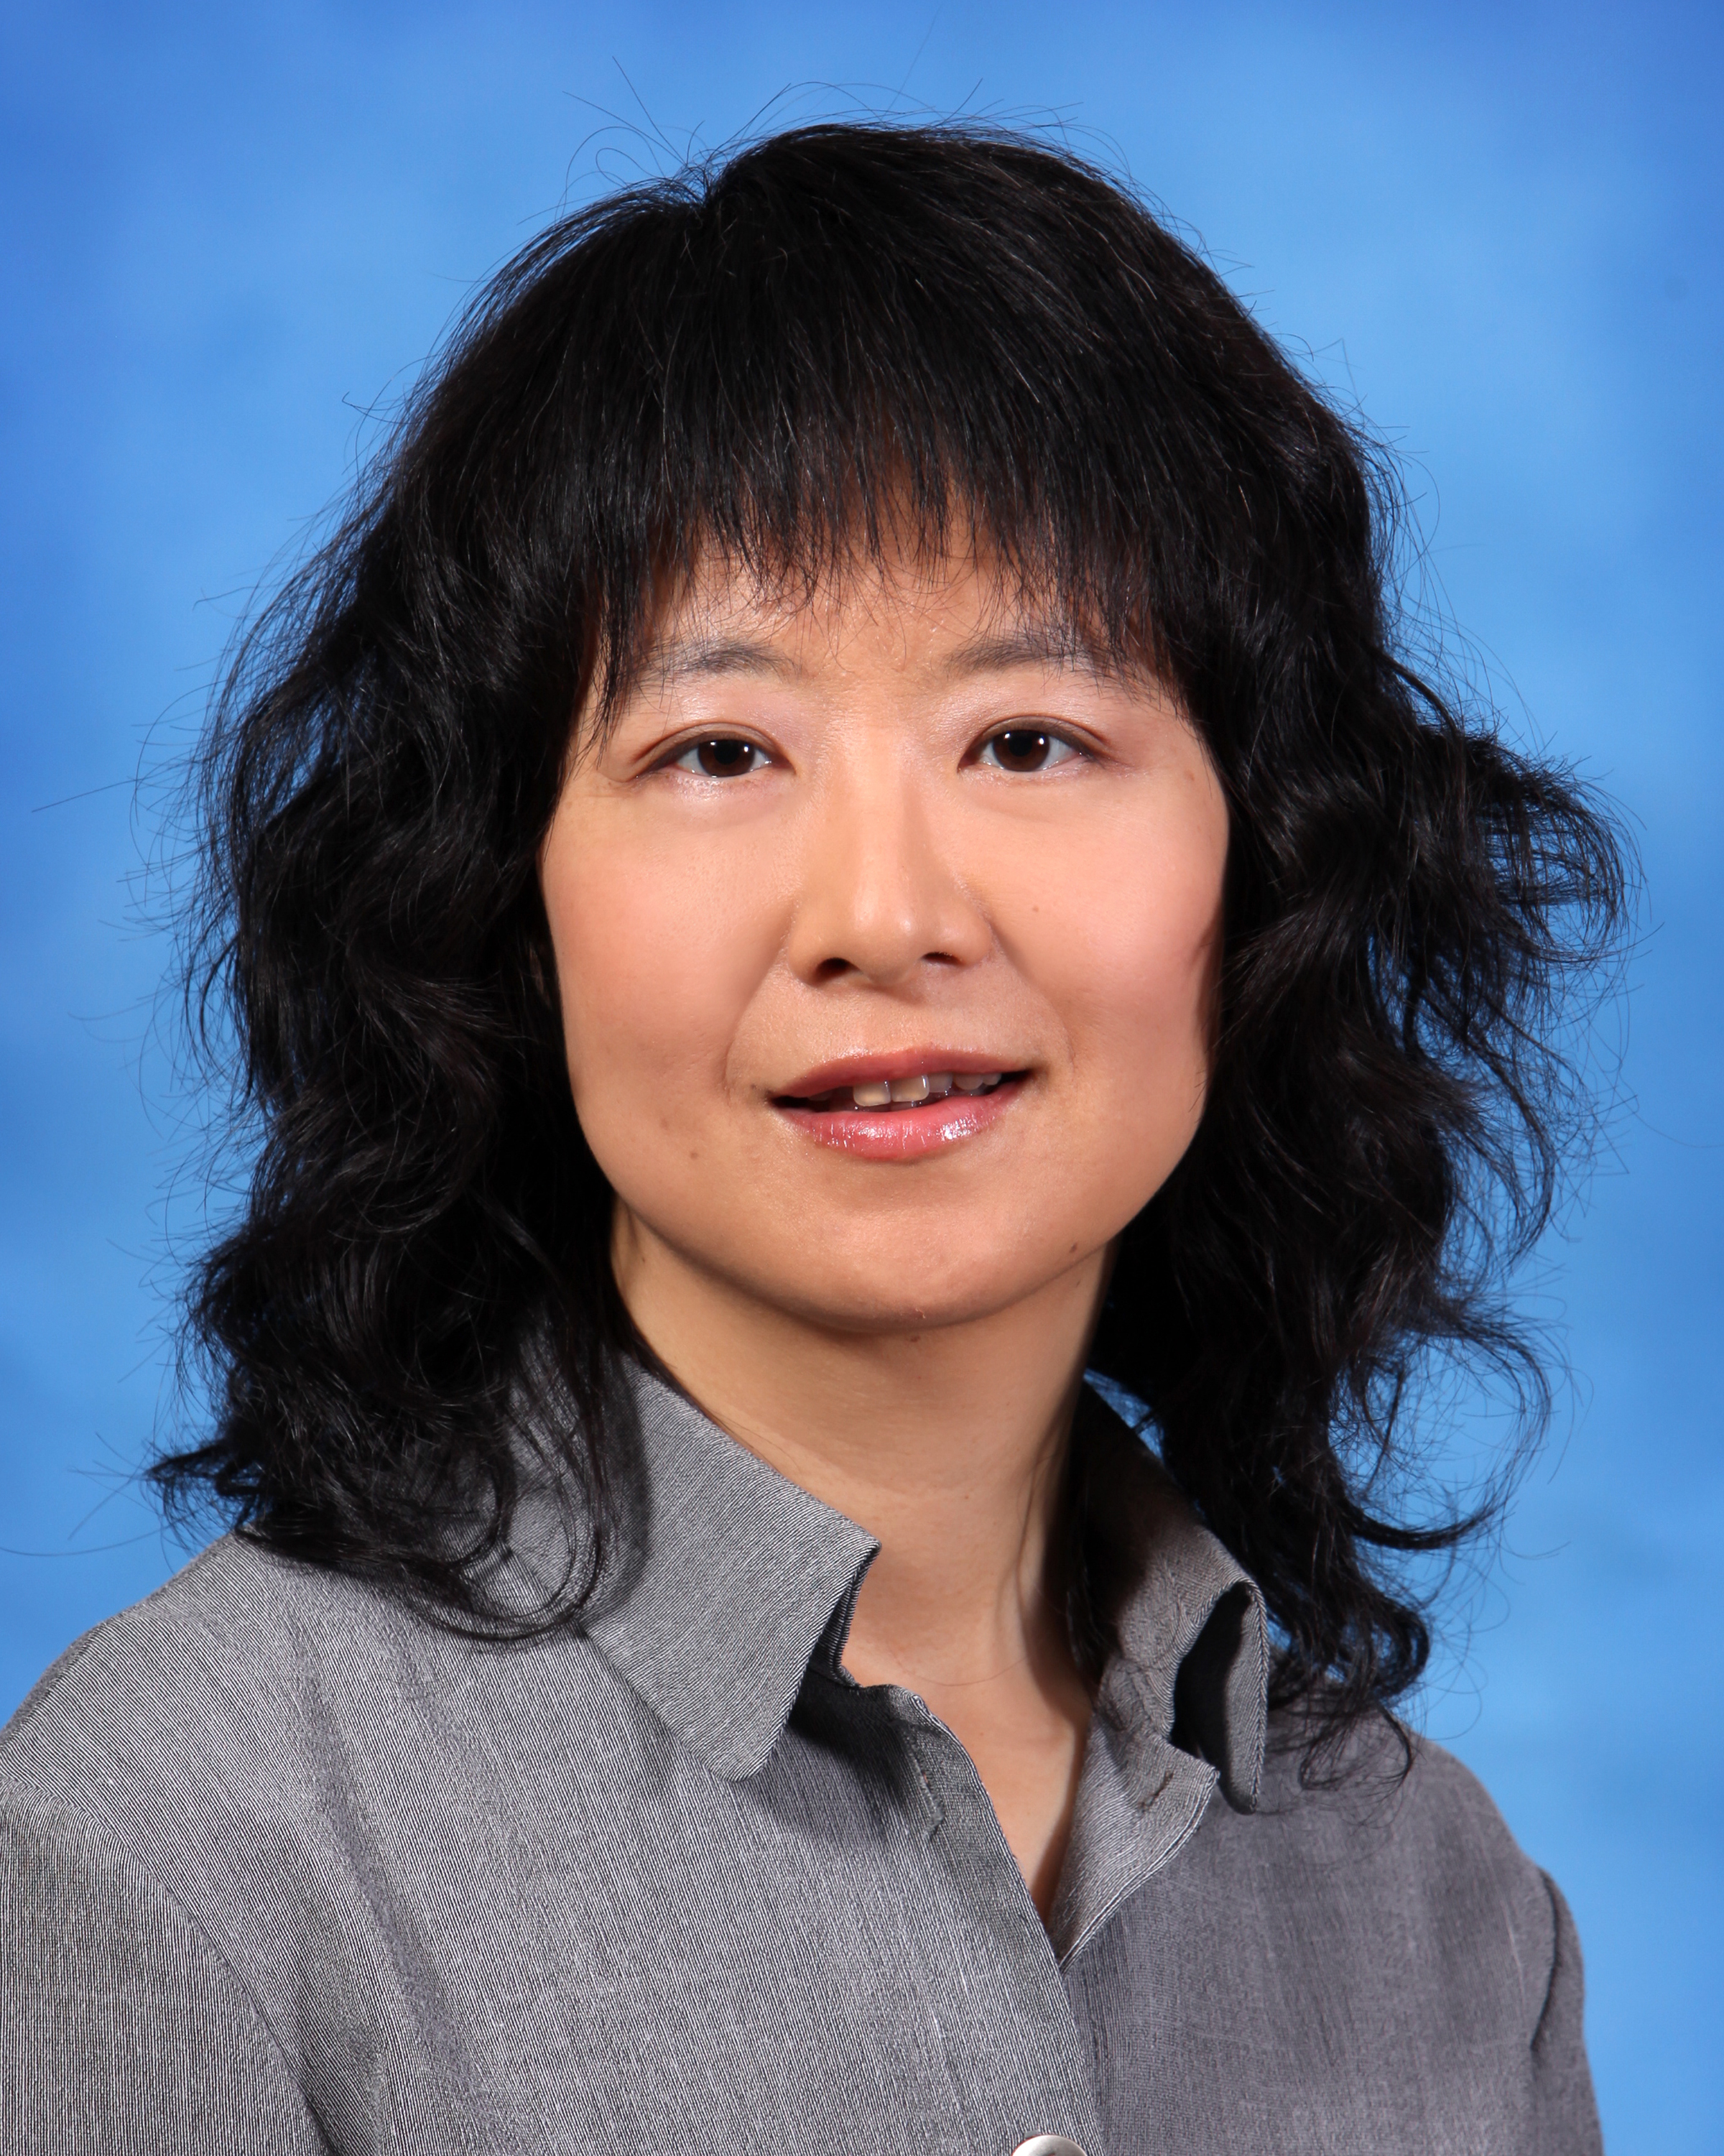 Greater buffalo physical therapy - Junmei Pan Graduated Summa Cum Laude From State University Of New York At Buffalo In 1998 She Has Over 16 Years Of Experience In Orthopedic Sports Medicine